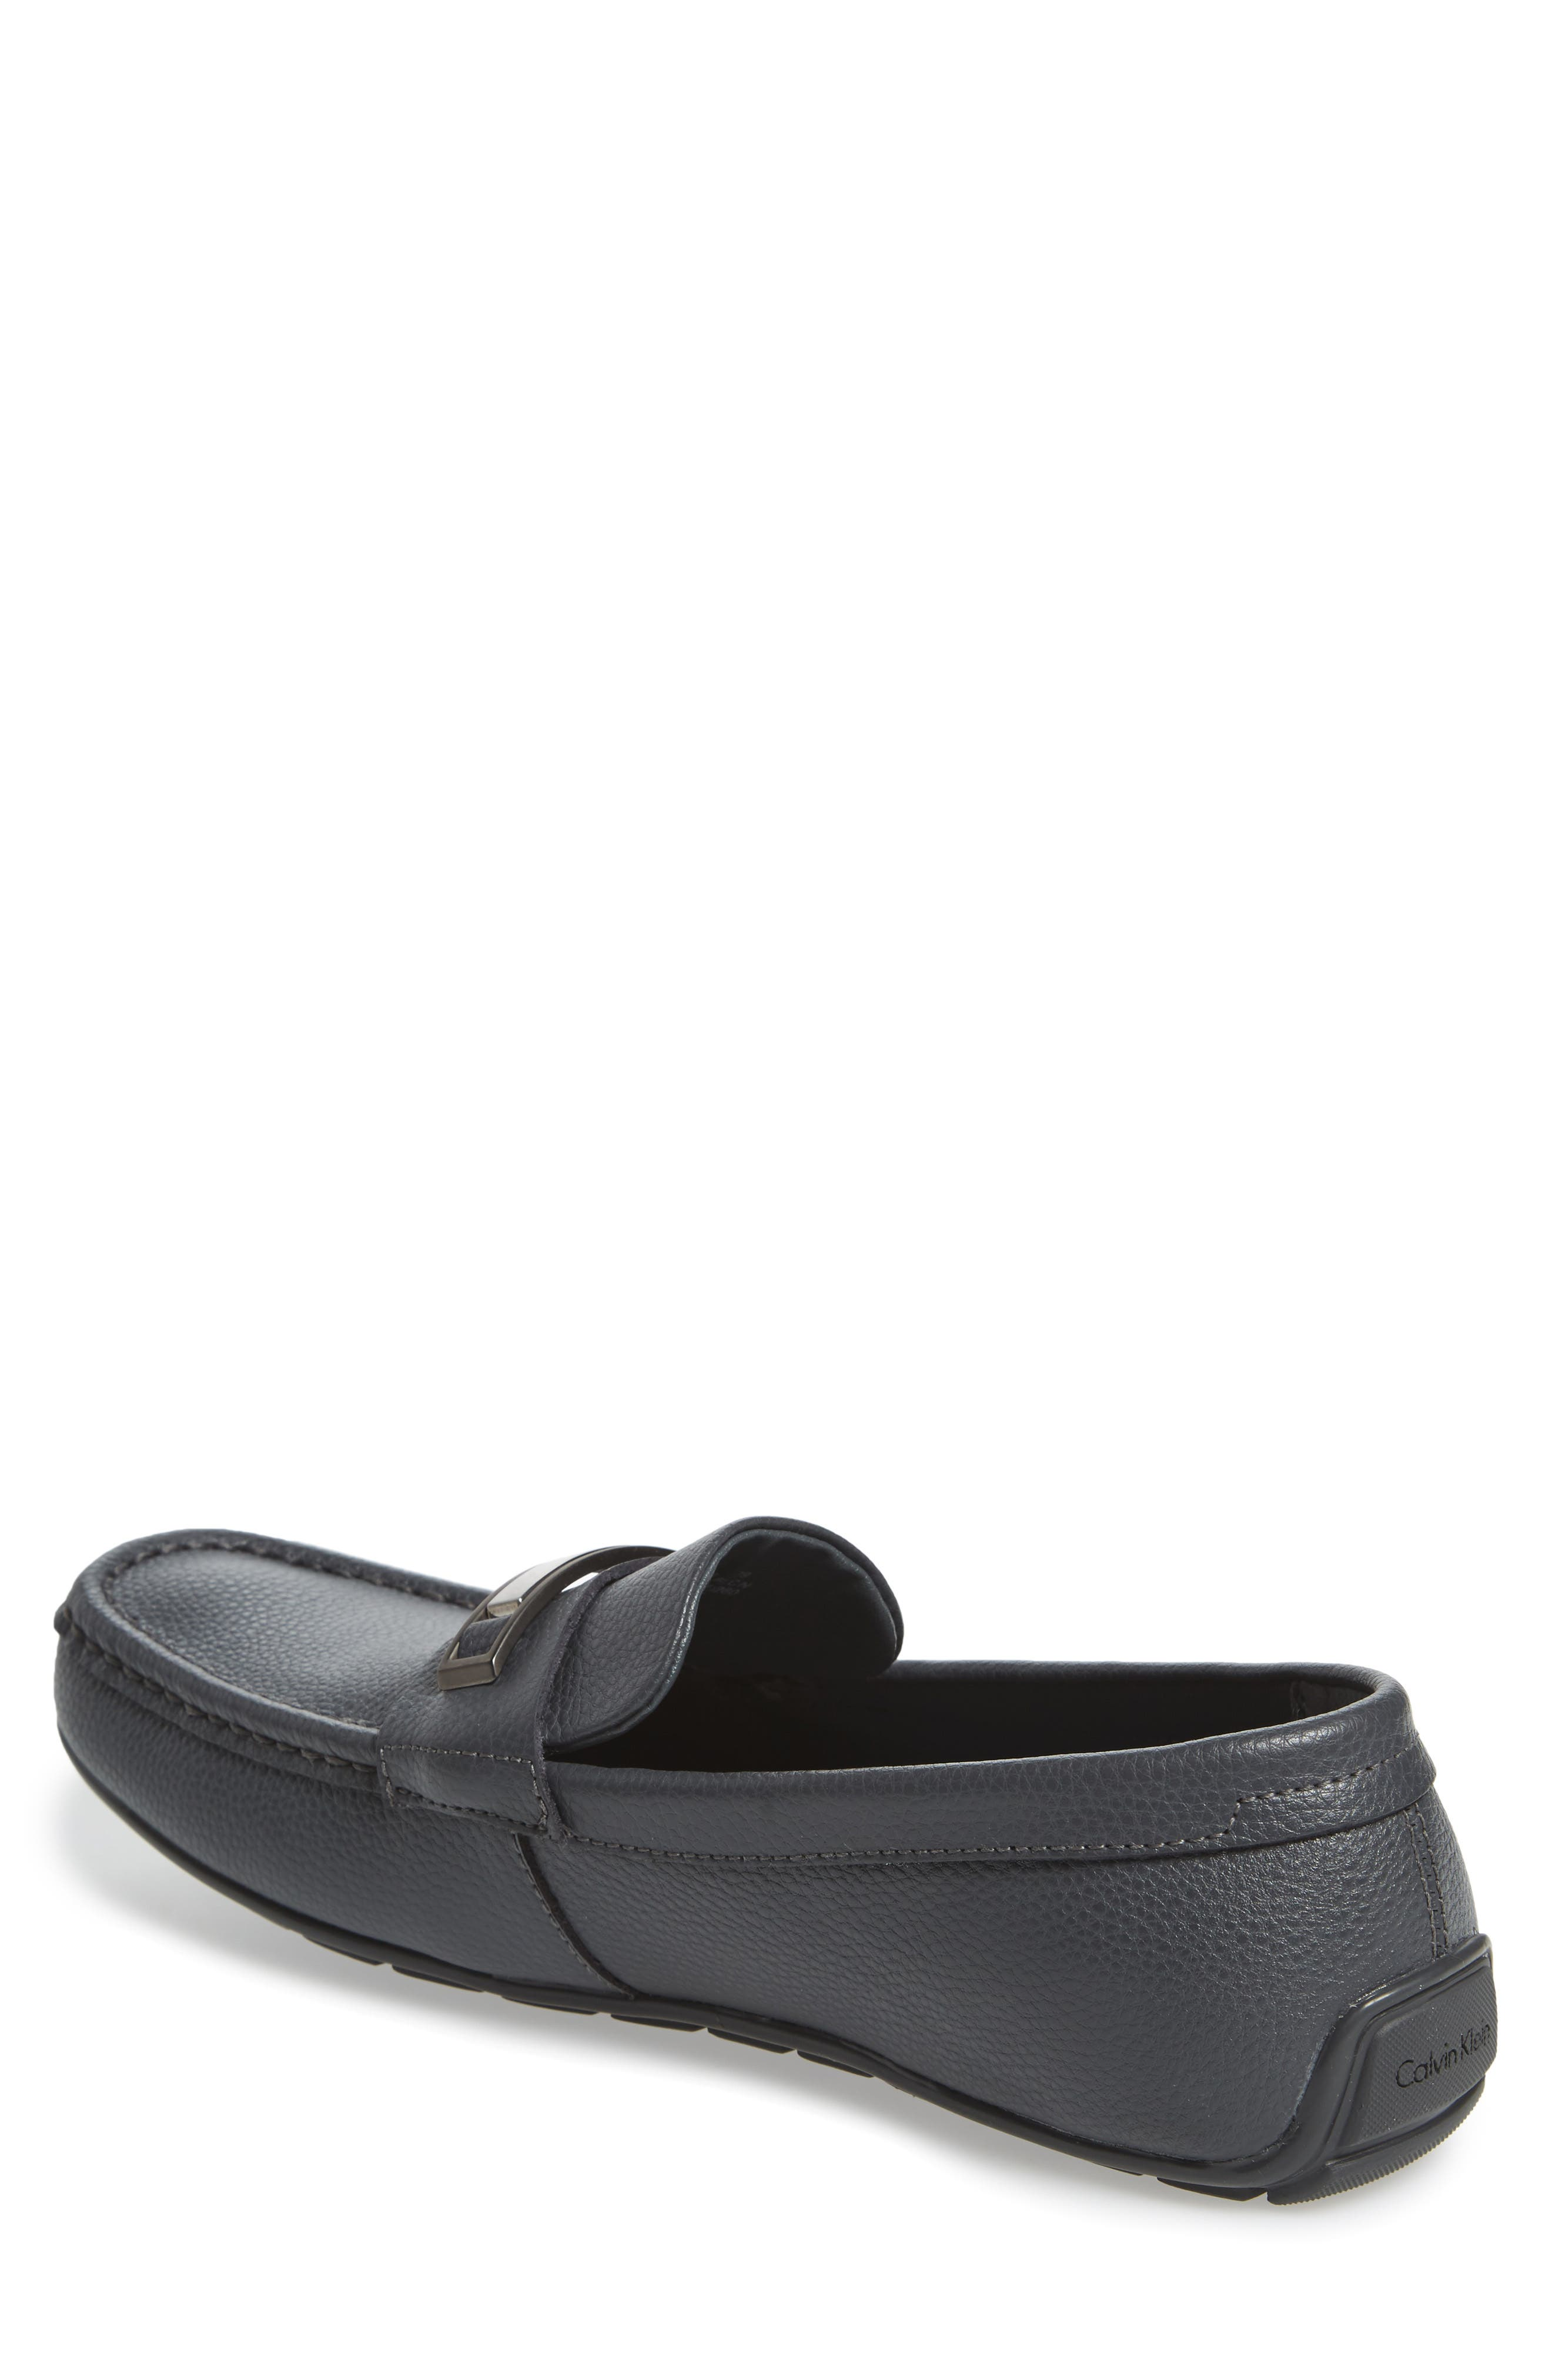 Irving Driving Loafer,                             Alternate thumbnail 6, color,